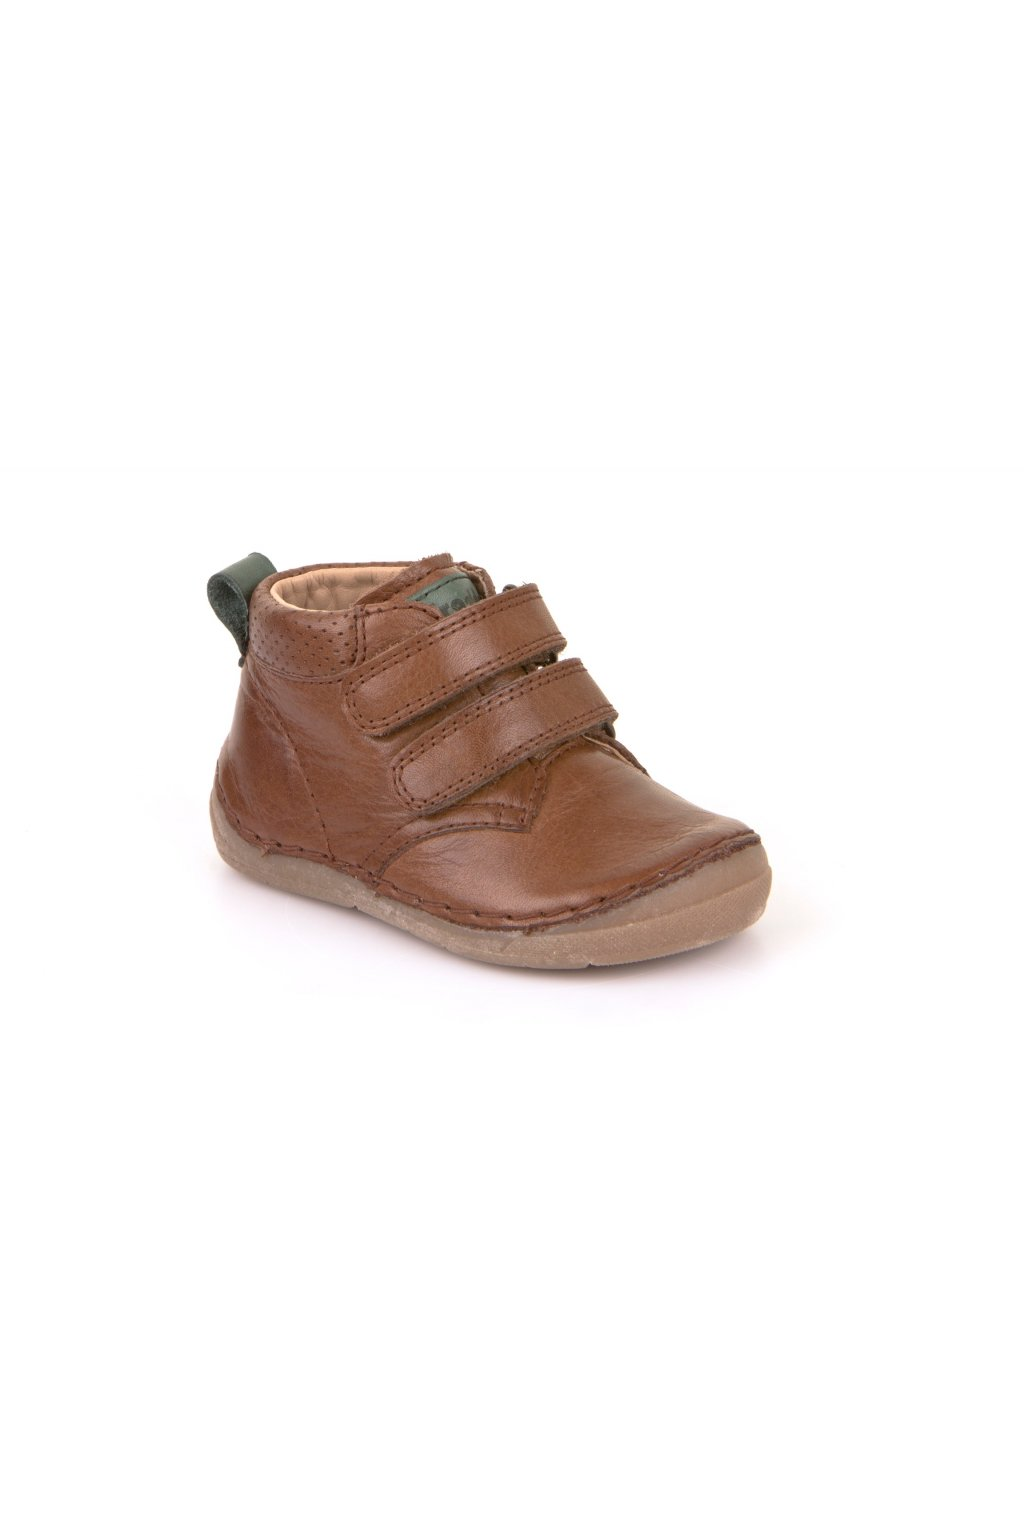 Froddo Shoes Brown